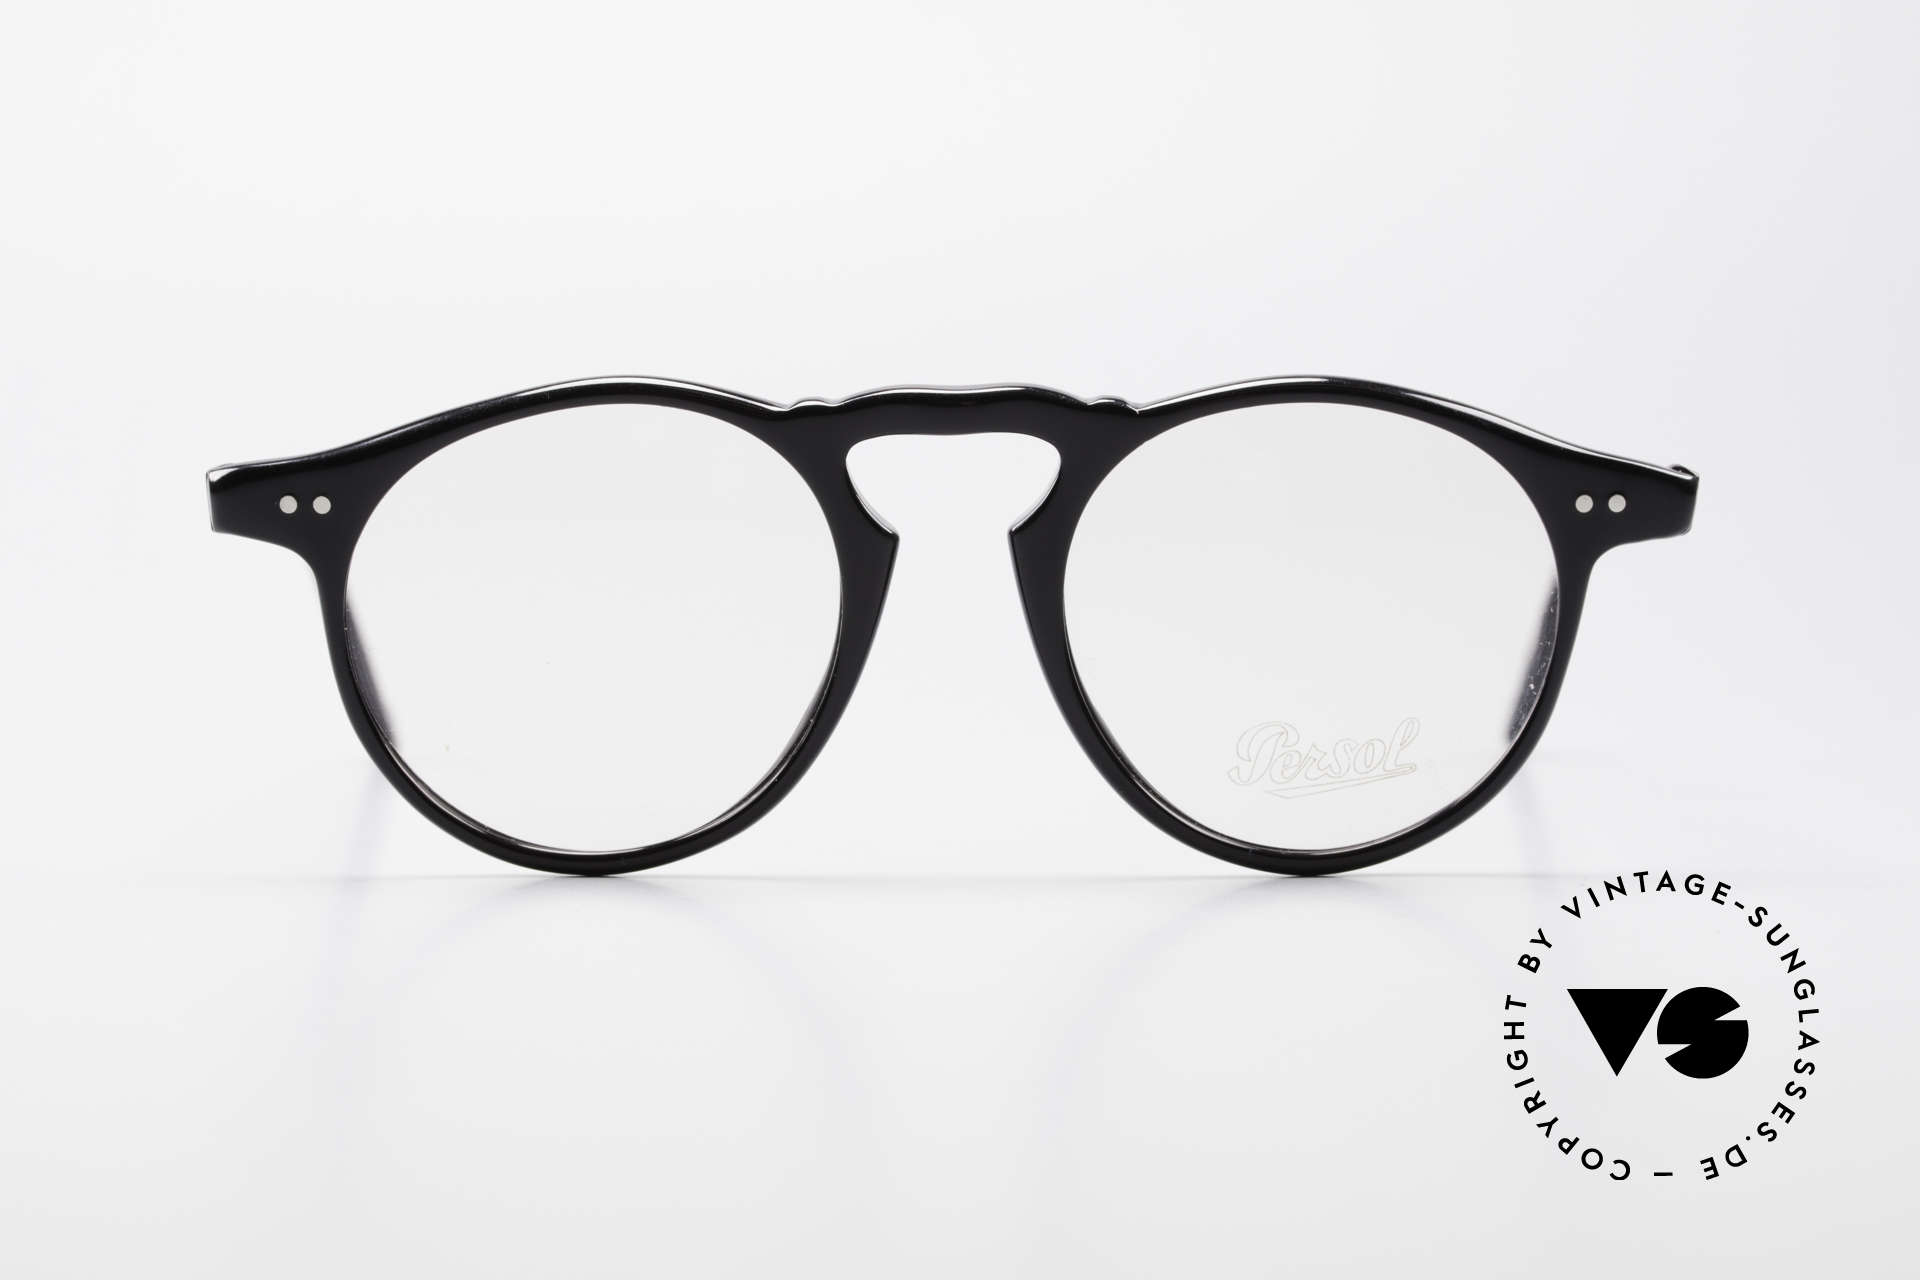 Persol 750 Ratti 80's Vintage Panto Eyeglasses, noble & timeless model; legendary Panto Design, Made for Men and Women